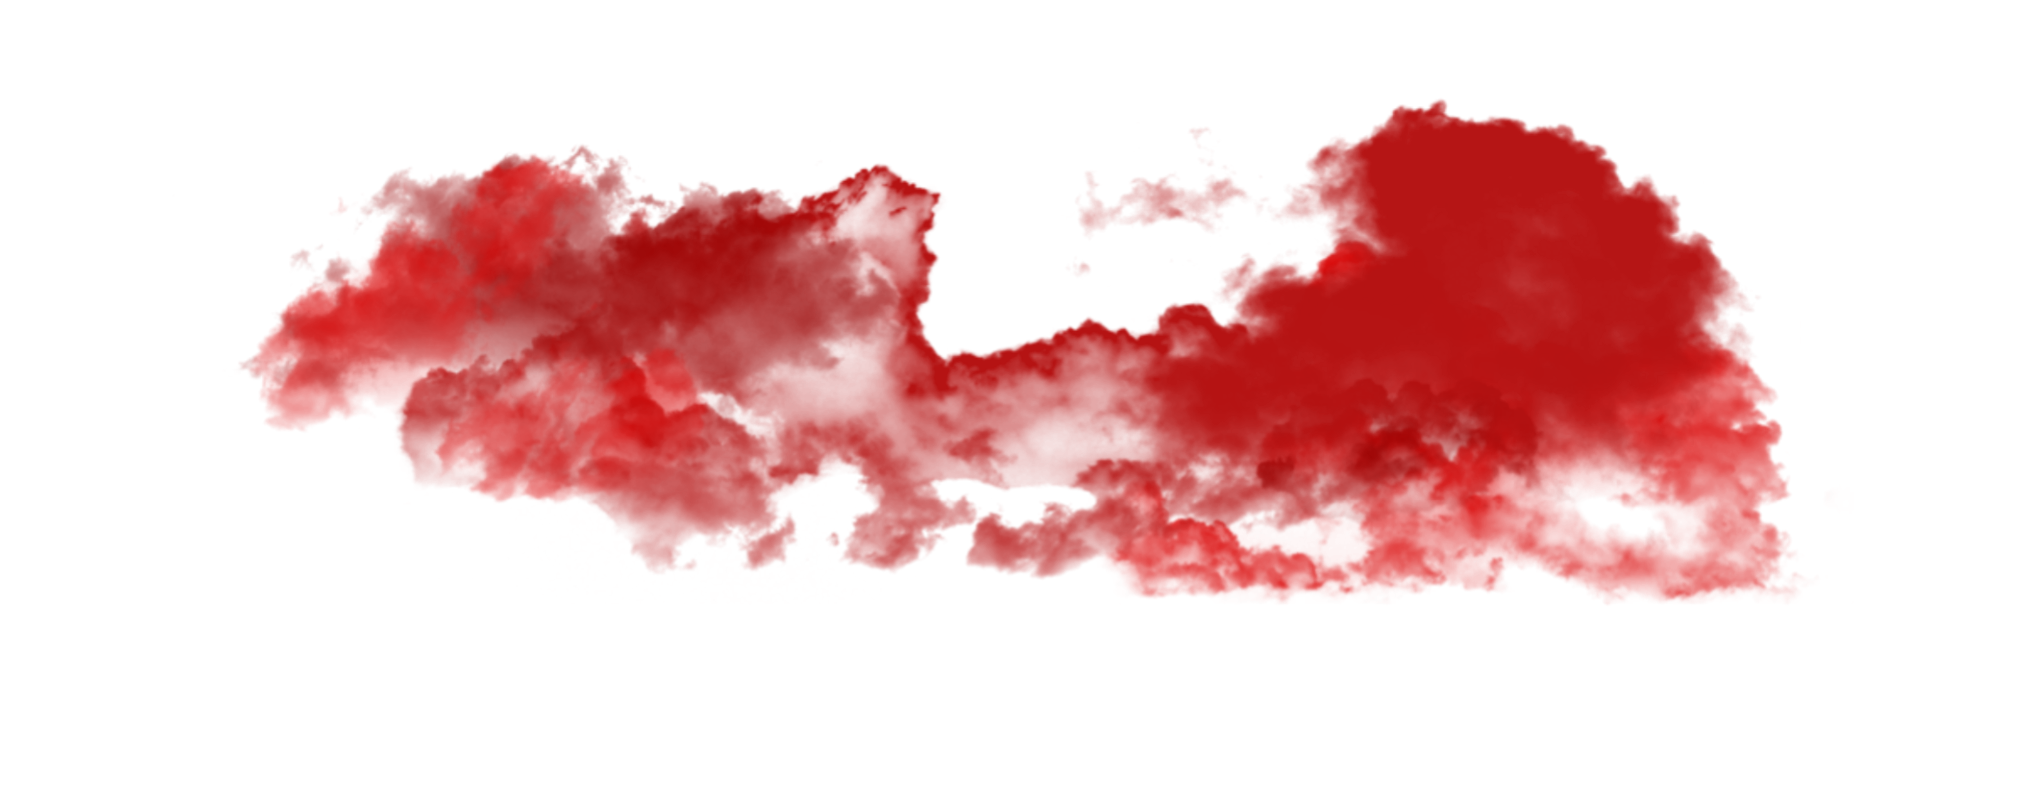 Red smoke png. Image peoplepng com